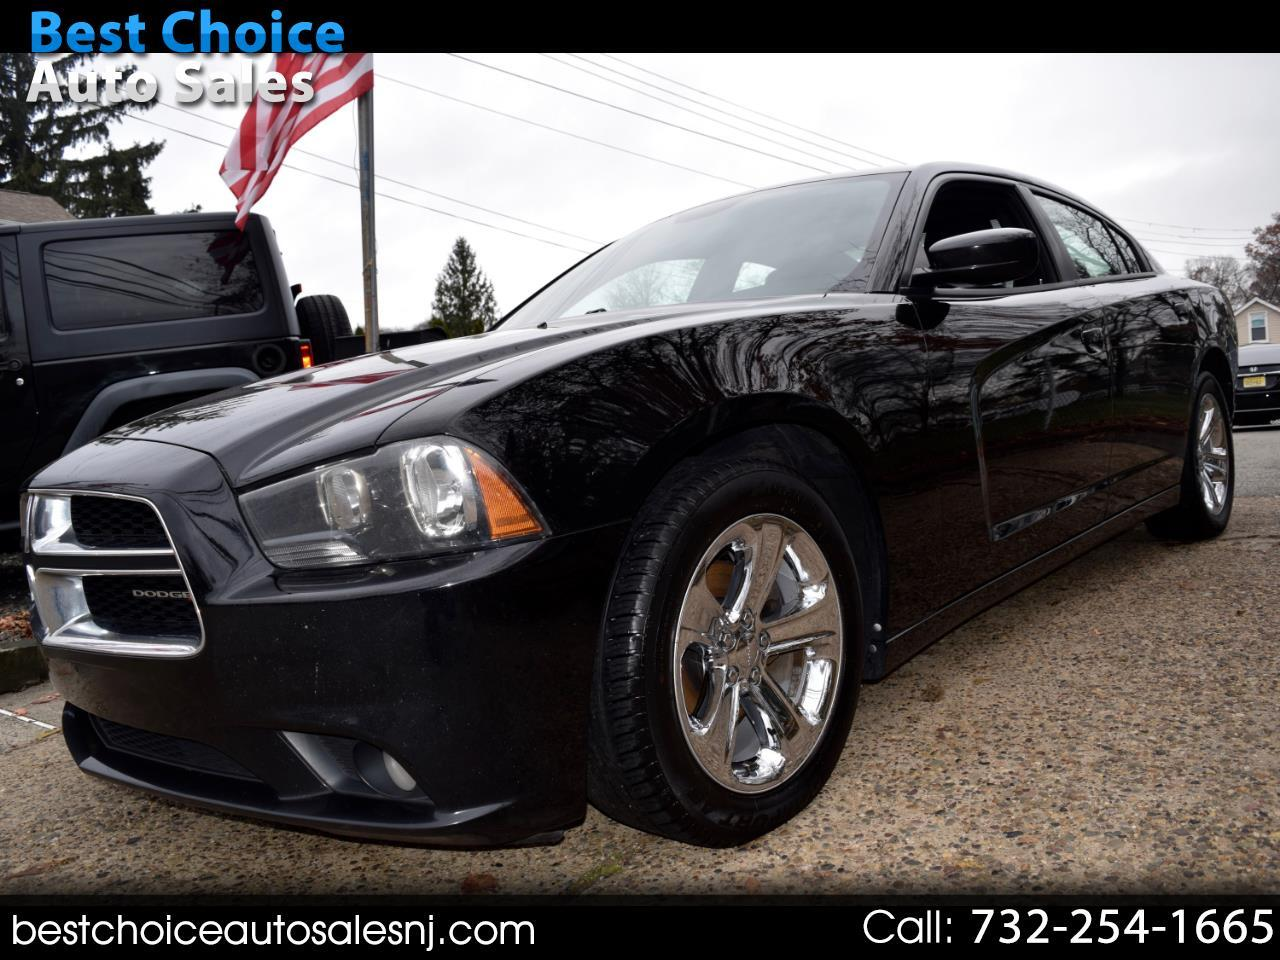 2013 Dodge Charger 4dr Sdn SXT Plus RWD